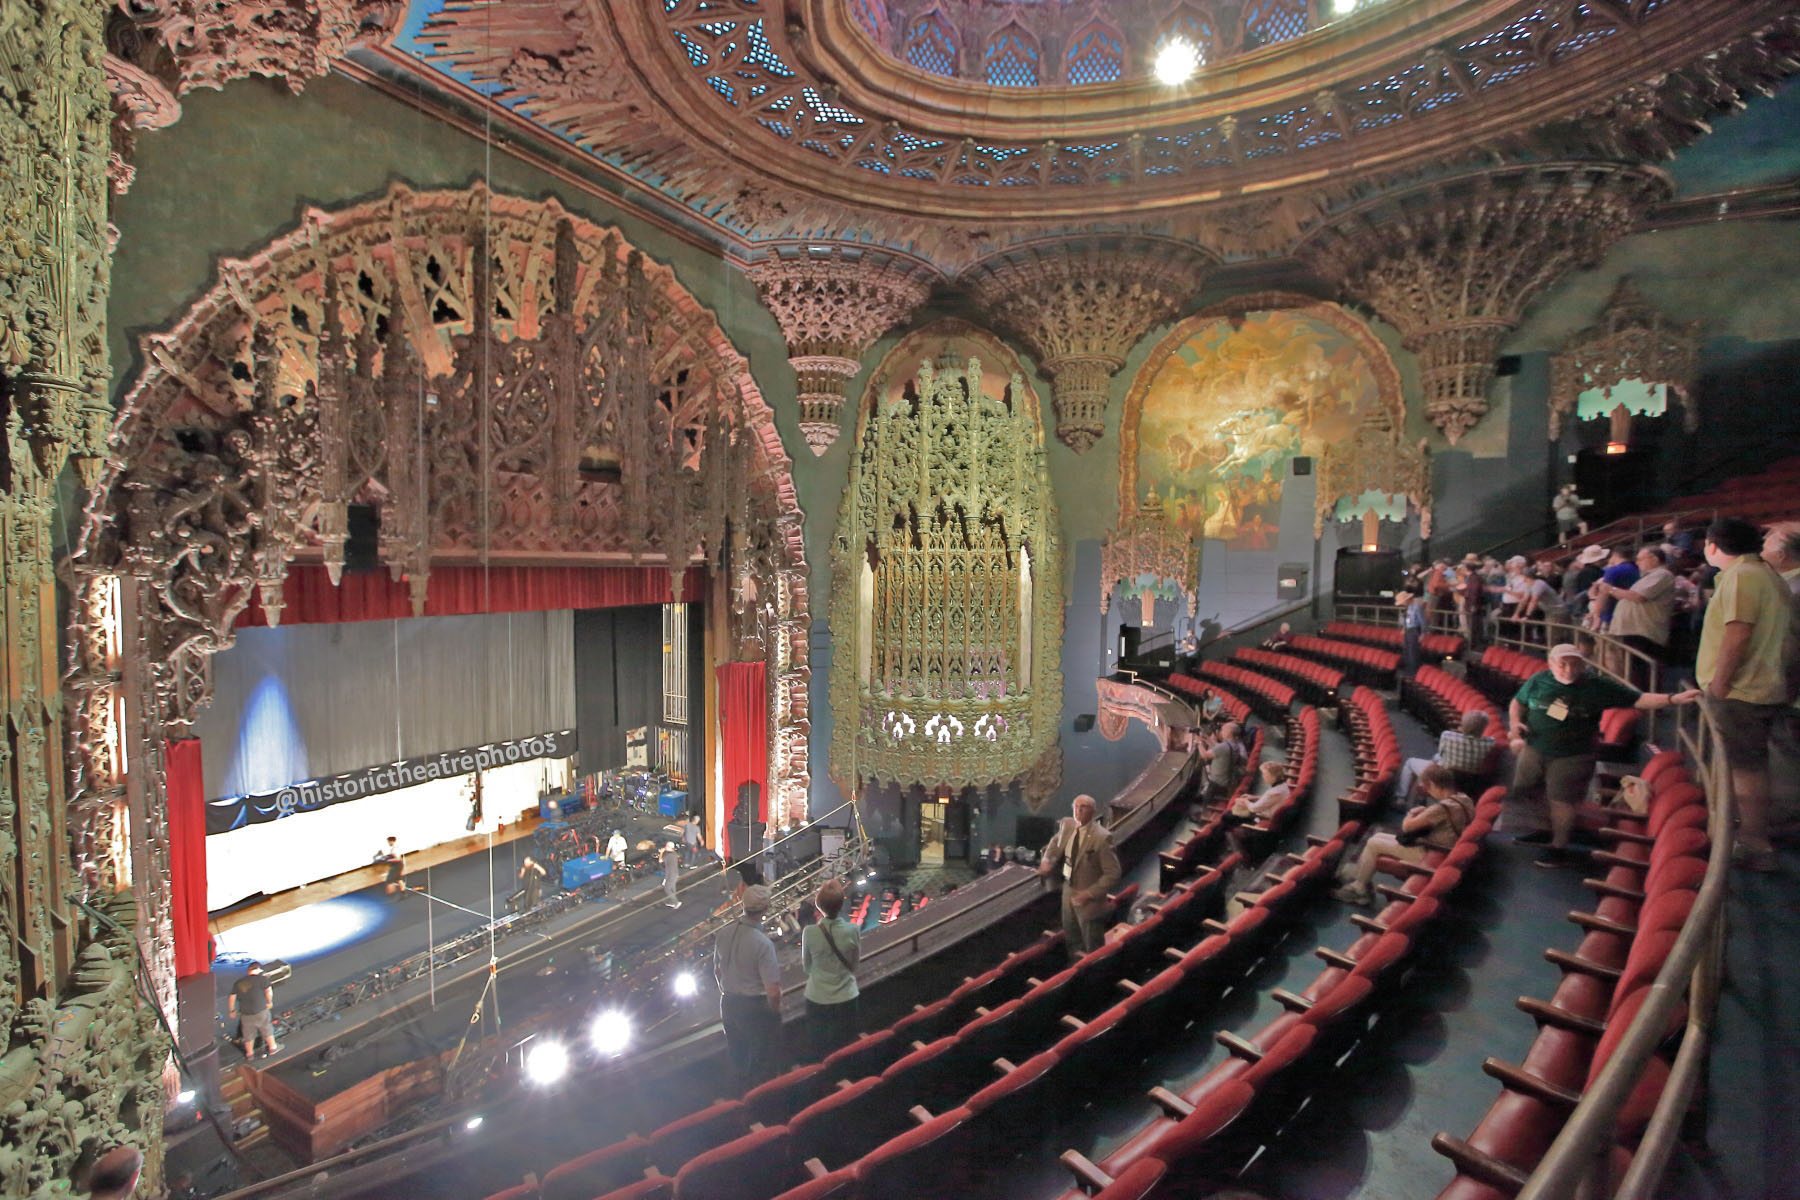 The 1927 Auditorium, designed by architect C. Howard Crane